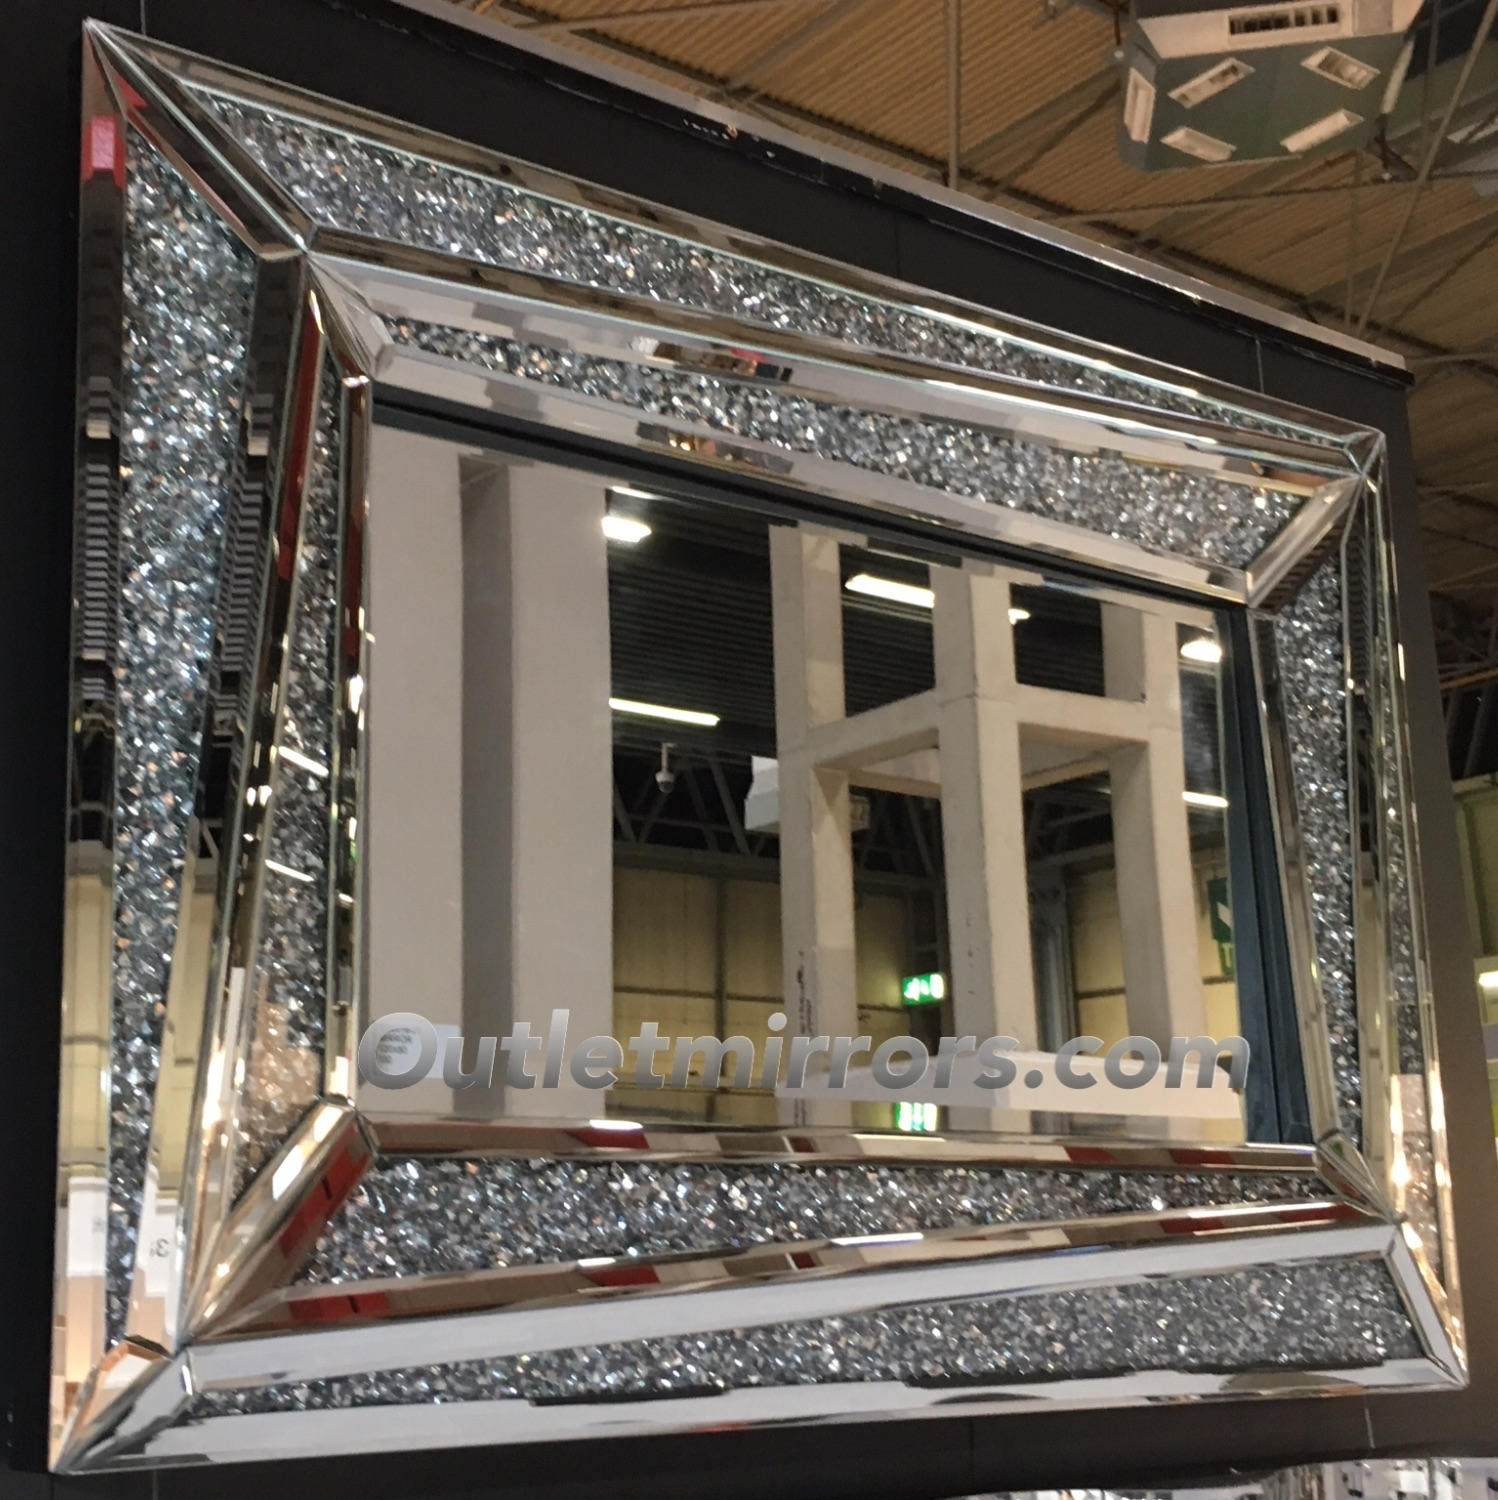 New Diamond Crush Sparkle Alfonso Wall Mirror 120cm X 80cm Item In Stock